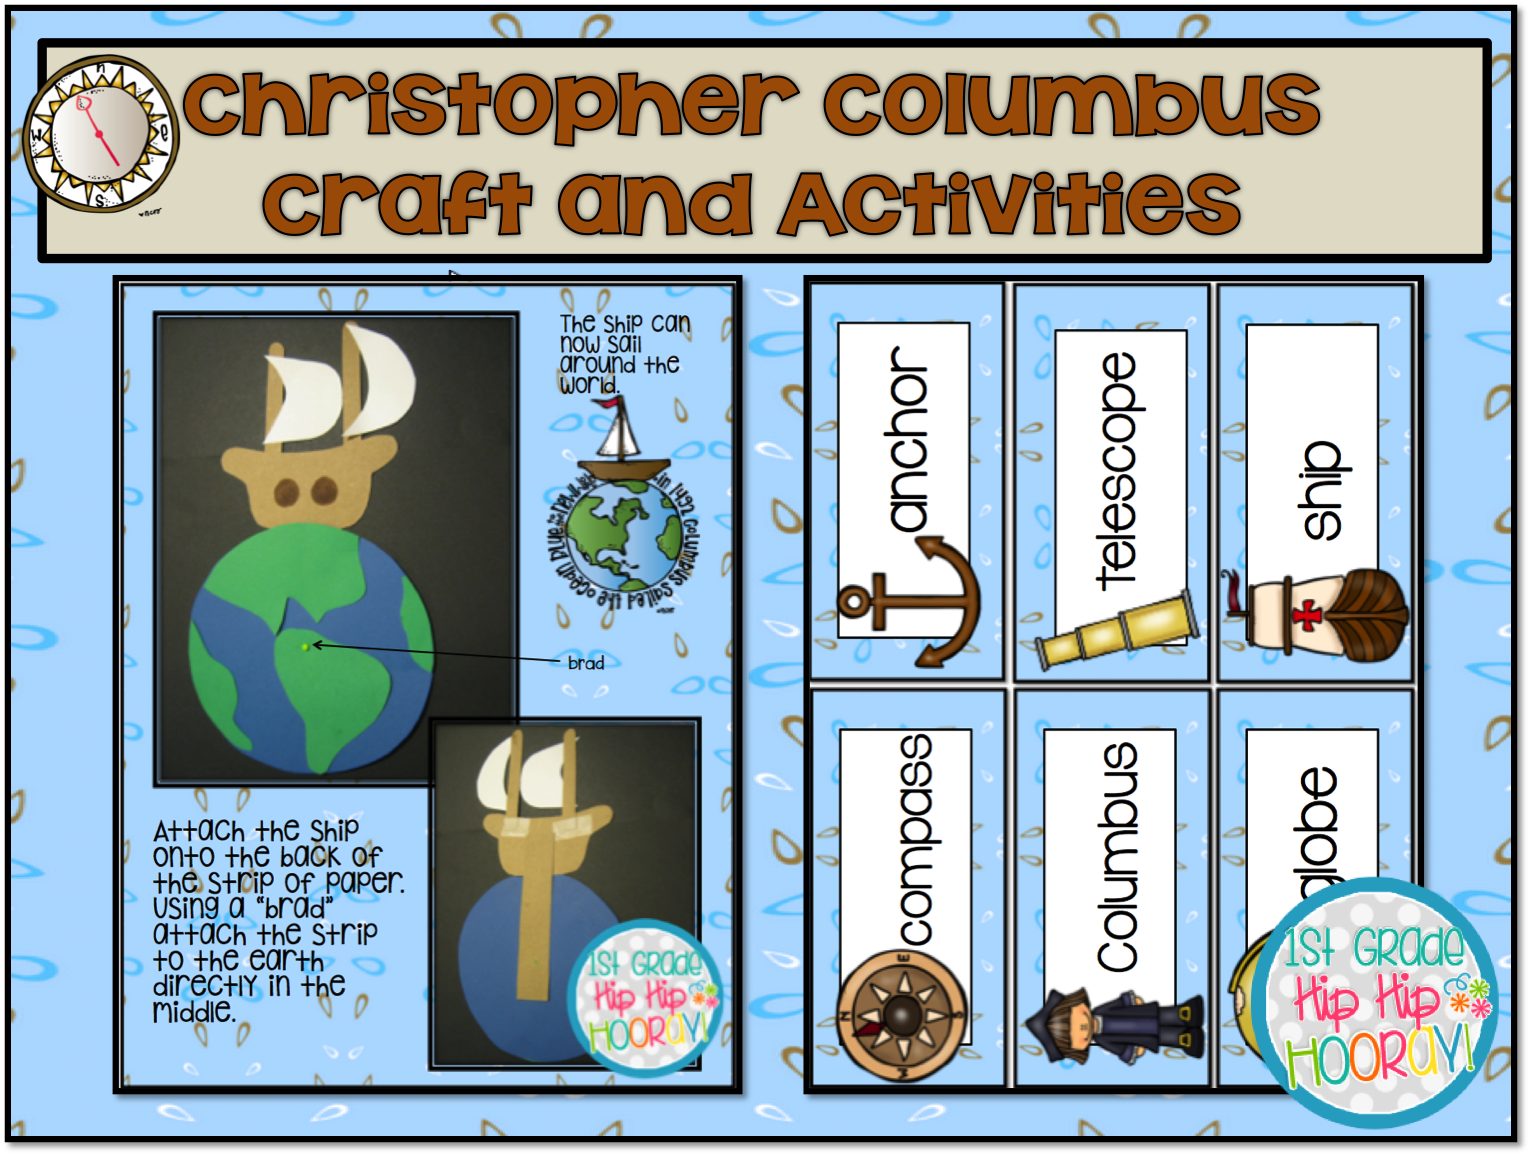 1st Grade Hip Hip Hooray Who Was Christopher Columbus